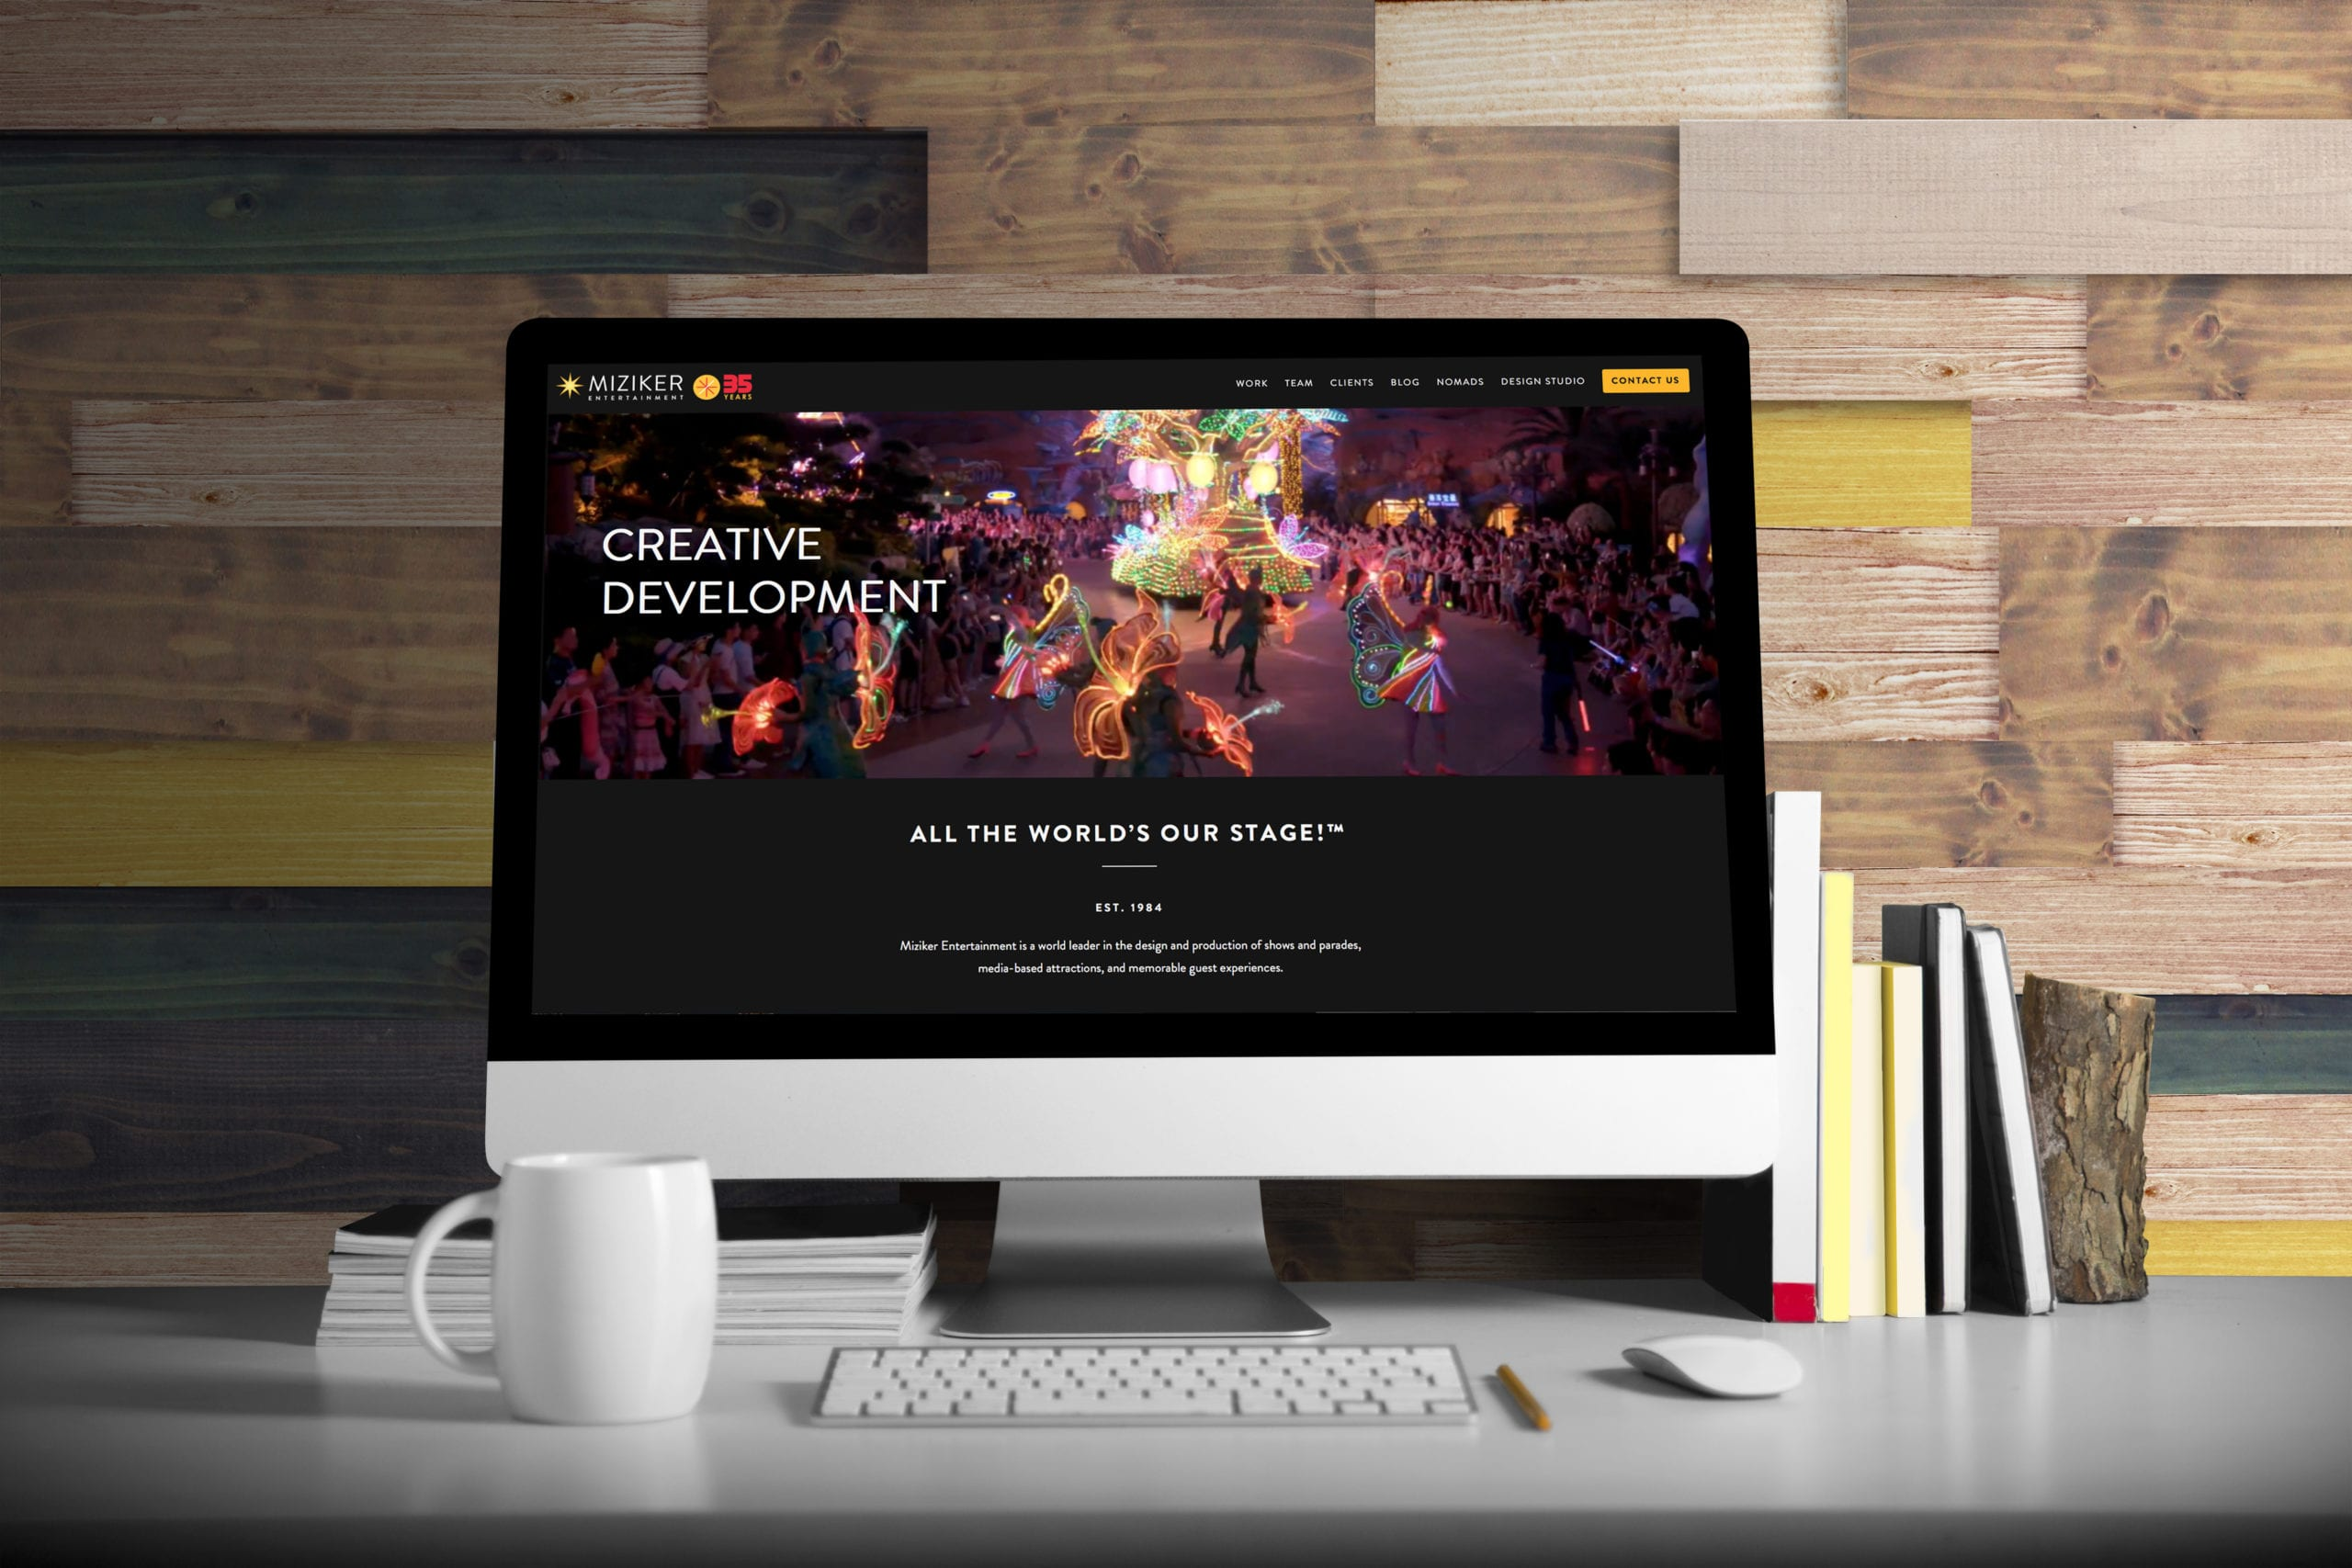 A desktop with the Miziker Entertainment website designed by Canyon Creative